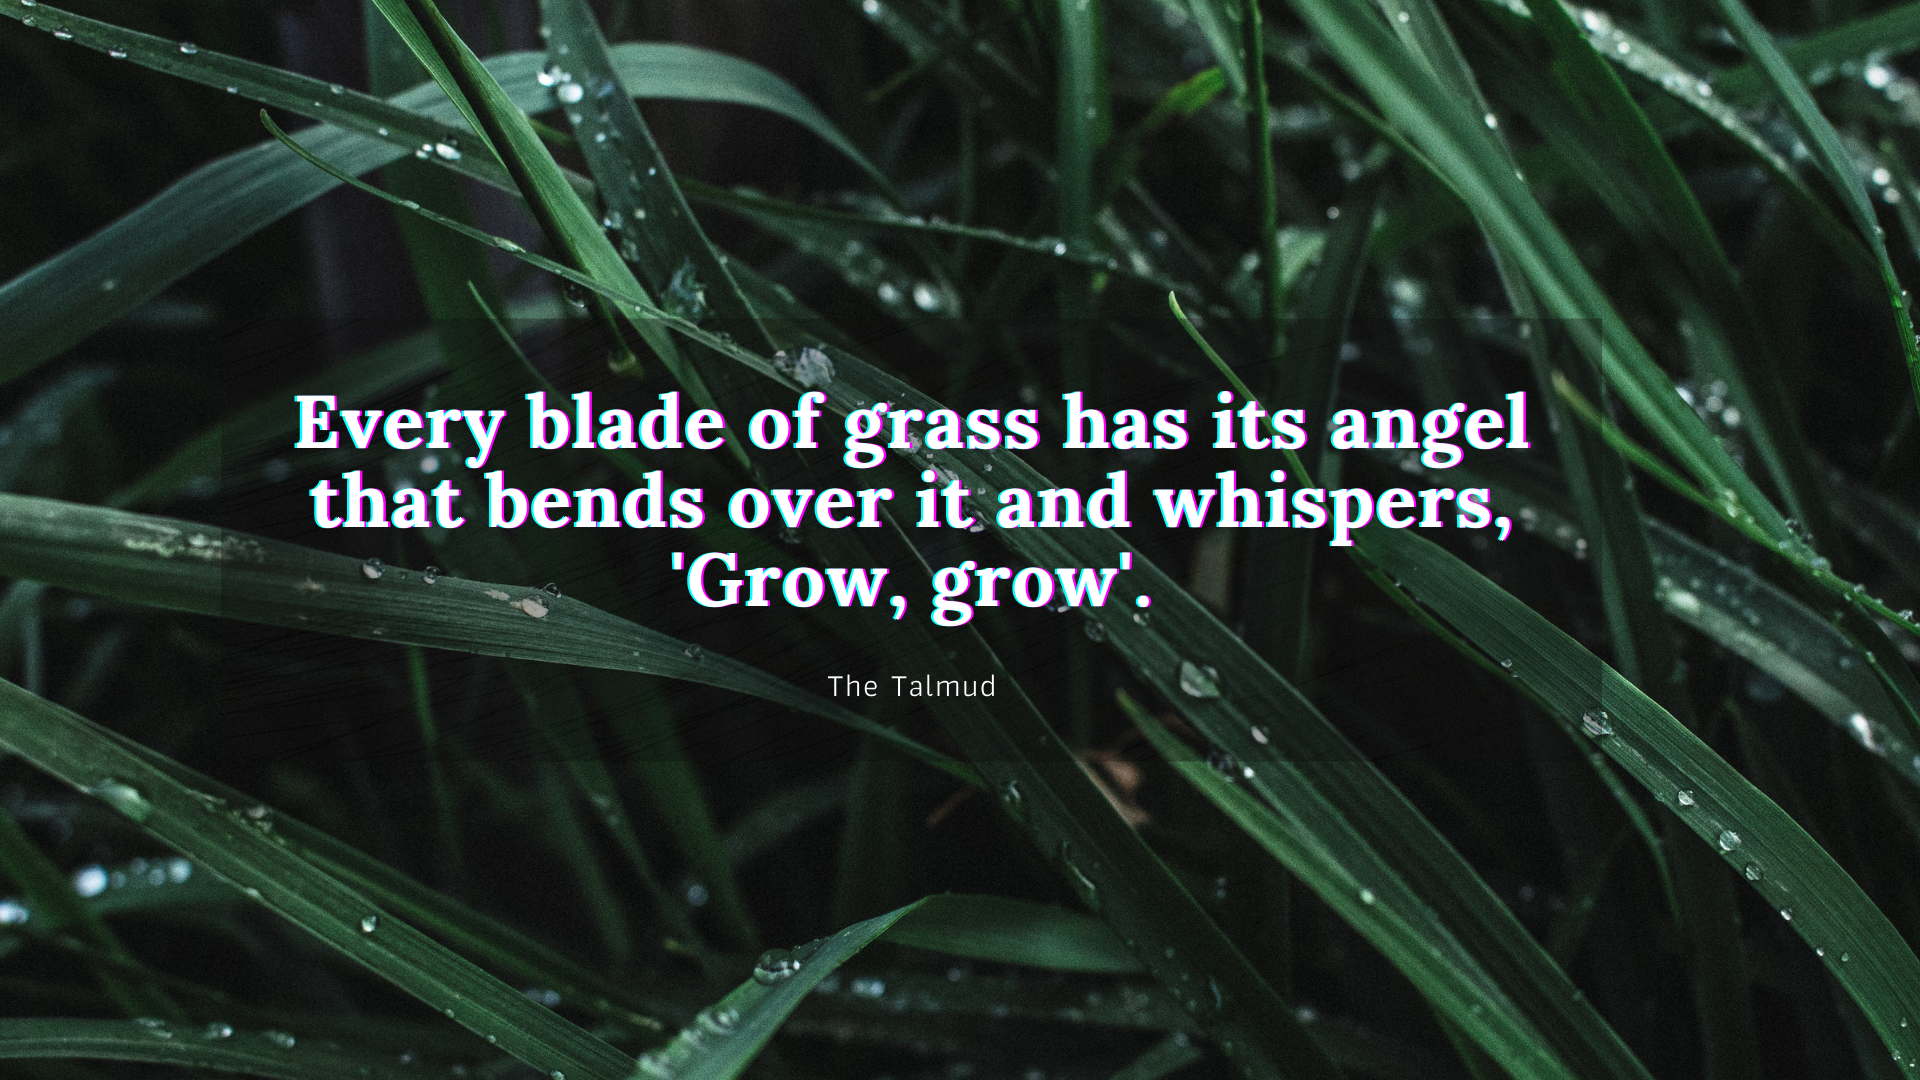 Every blade of grass has its angel that bends over it and whispers, 'Grow, grow'. – The talmud[1920×1080]